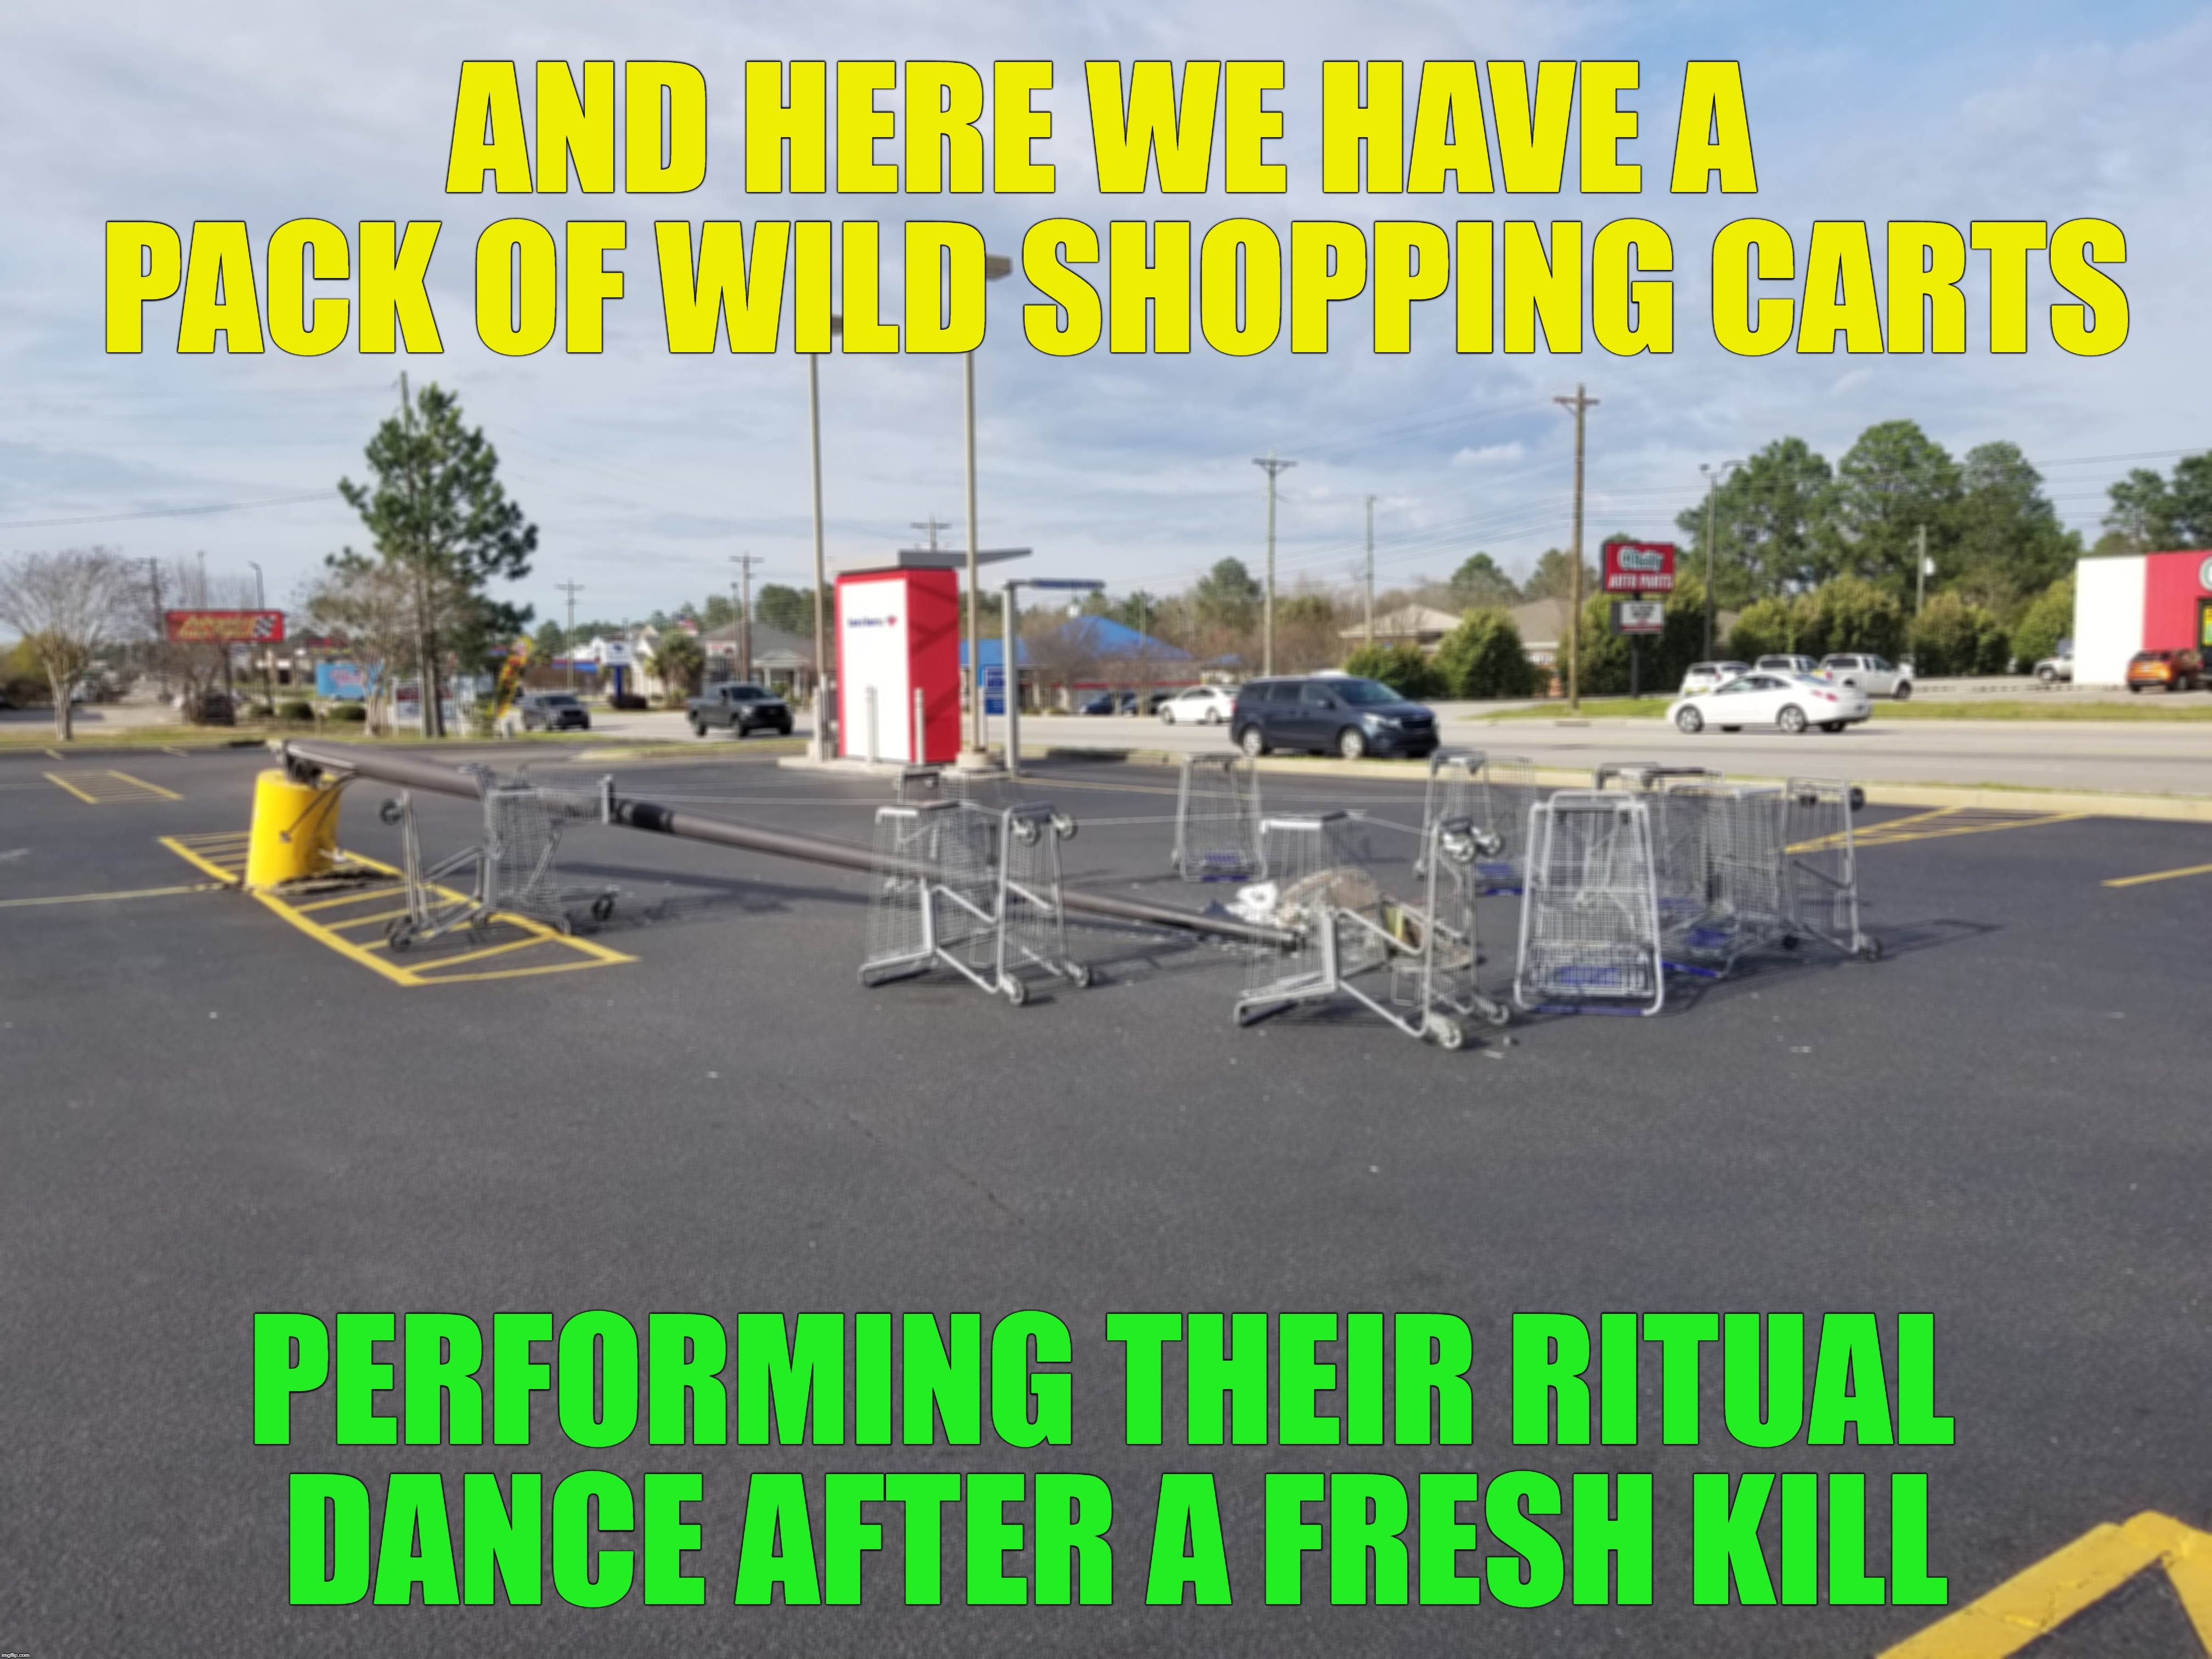 Parking lot poles are their favorite prey | AND HERE WE HAVE A PACK OF WILD SHOPPING CARTS PERFORMING THEIR RITUAL DANCE AFTER A FRESH KILL | image tagged in national geographic,random,it's not a potato | made w/ Imgflip meme maker